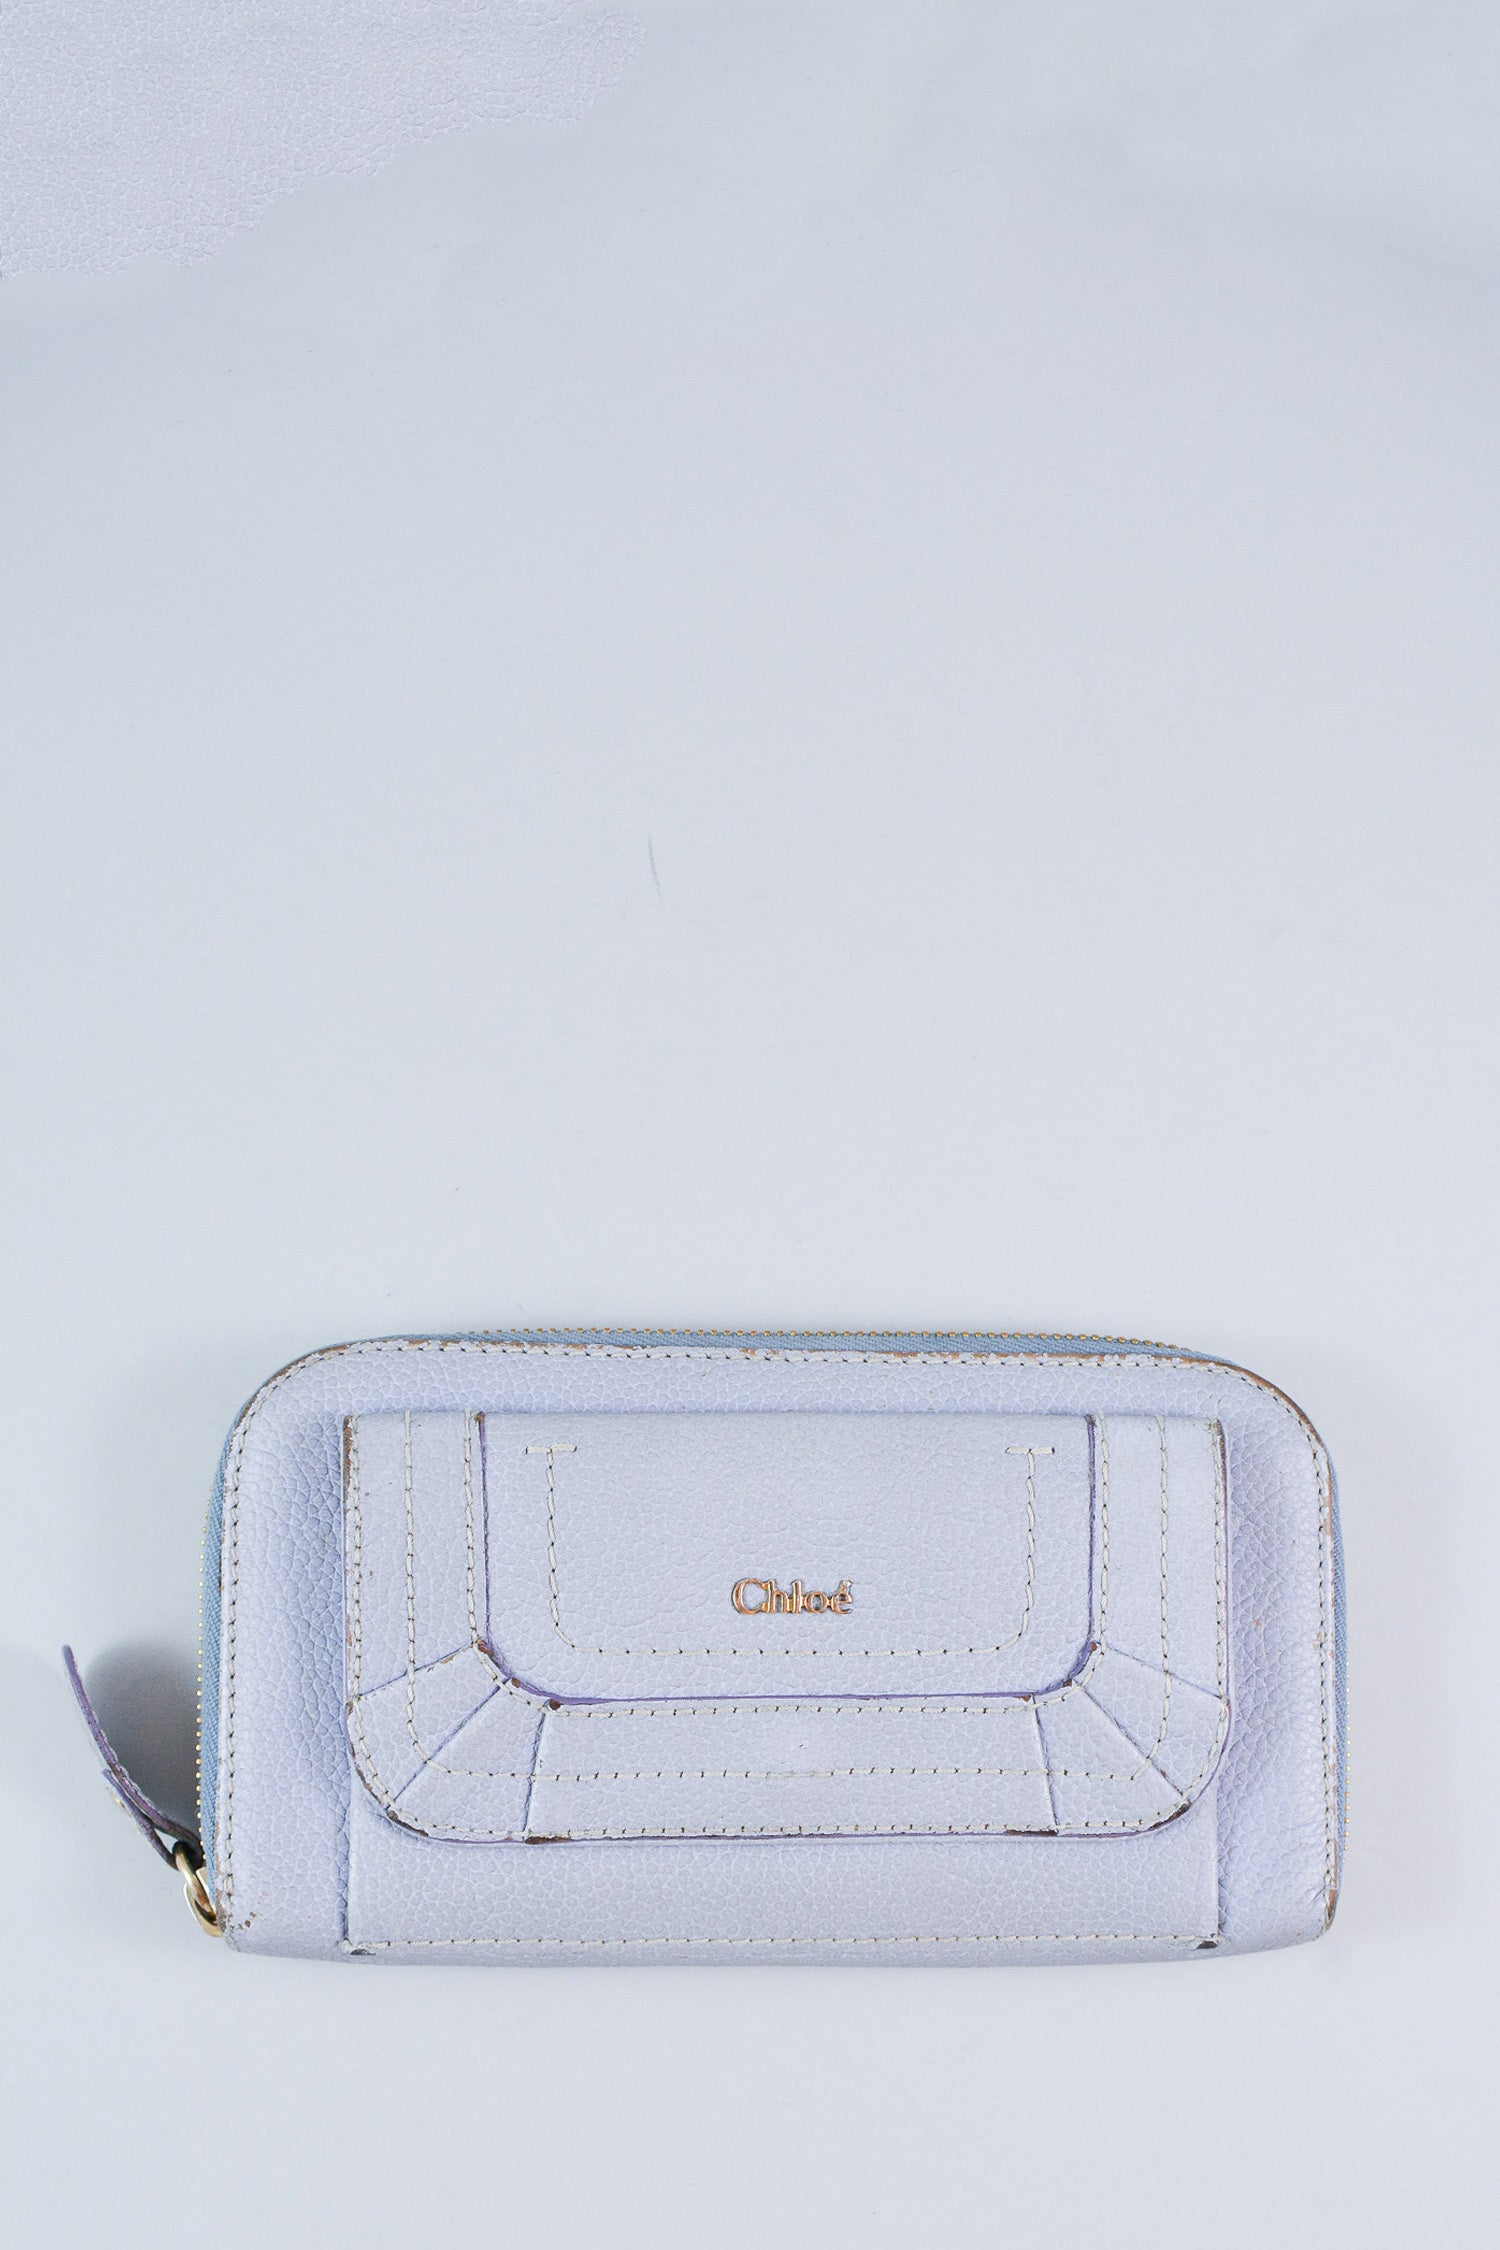 Chloe Purple Zipped Wallet